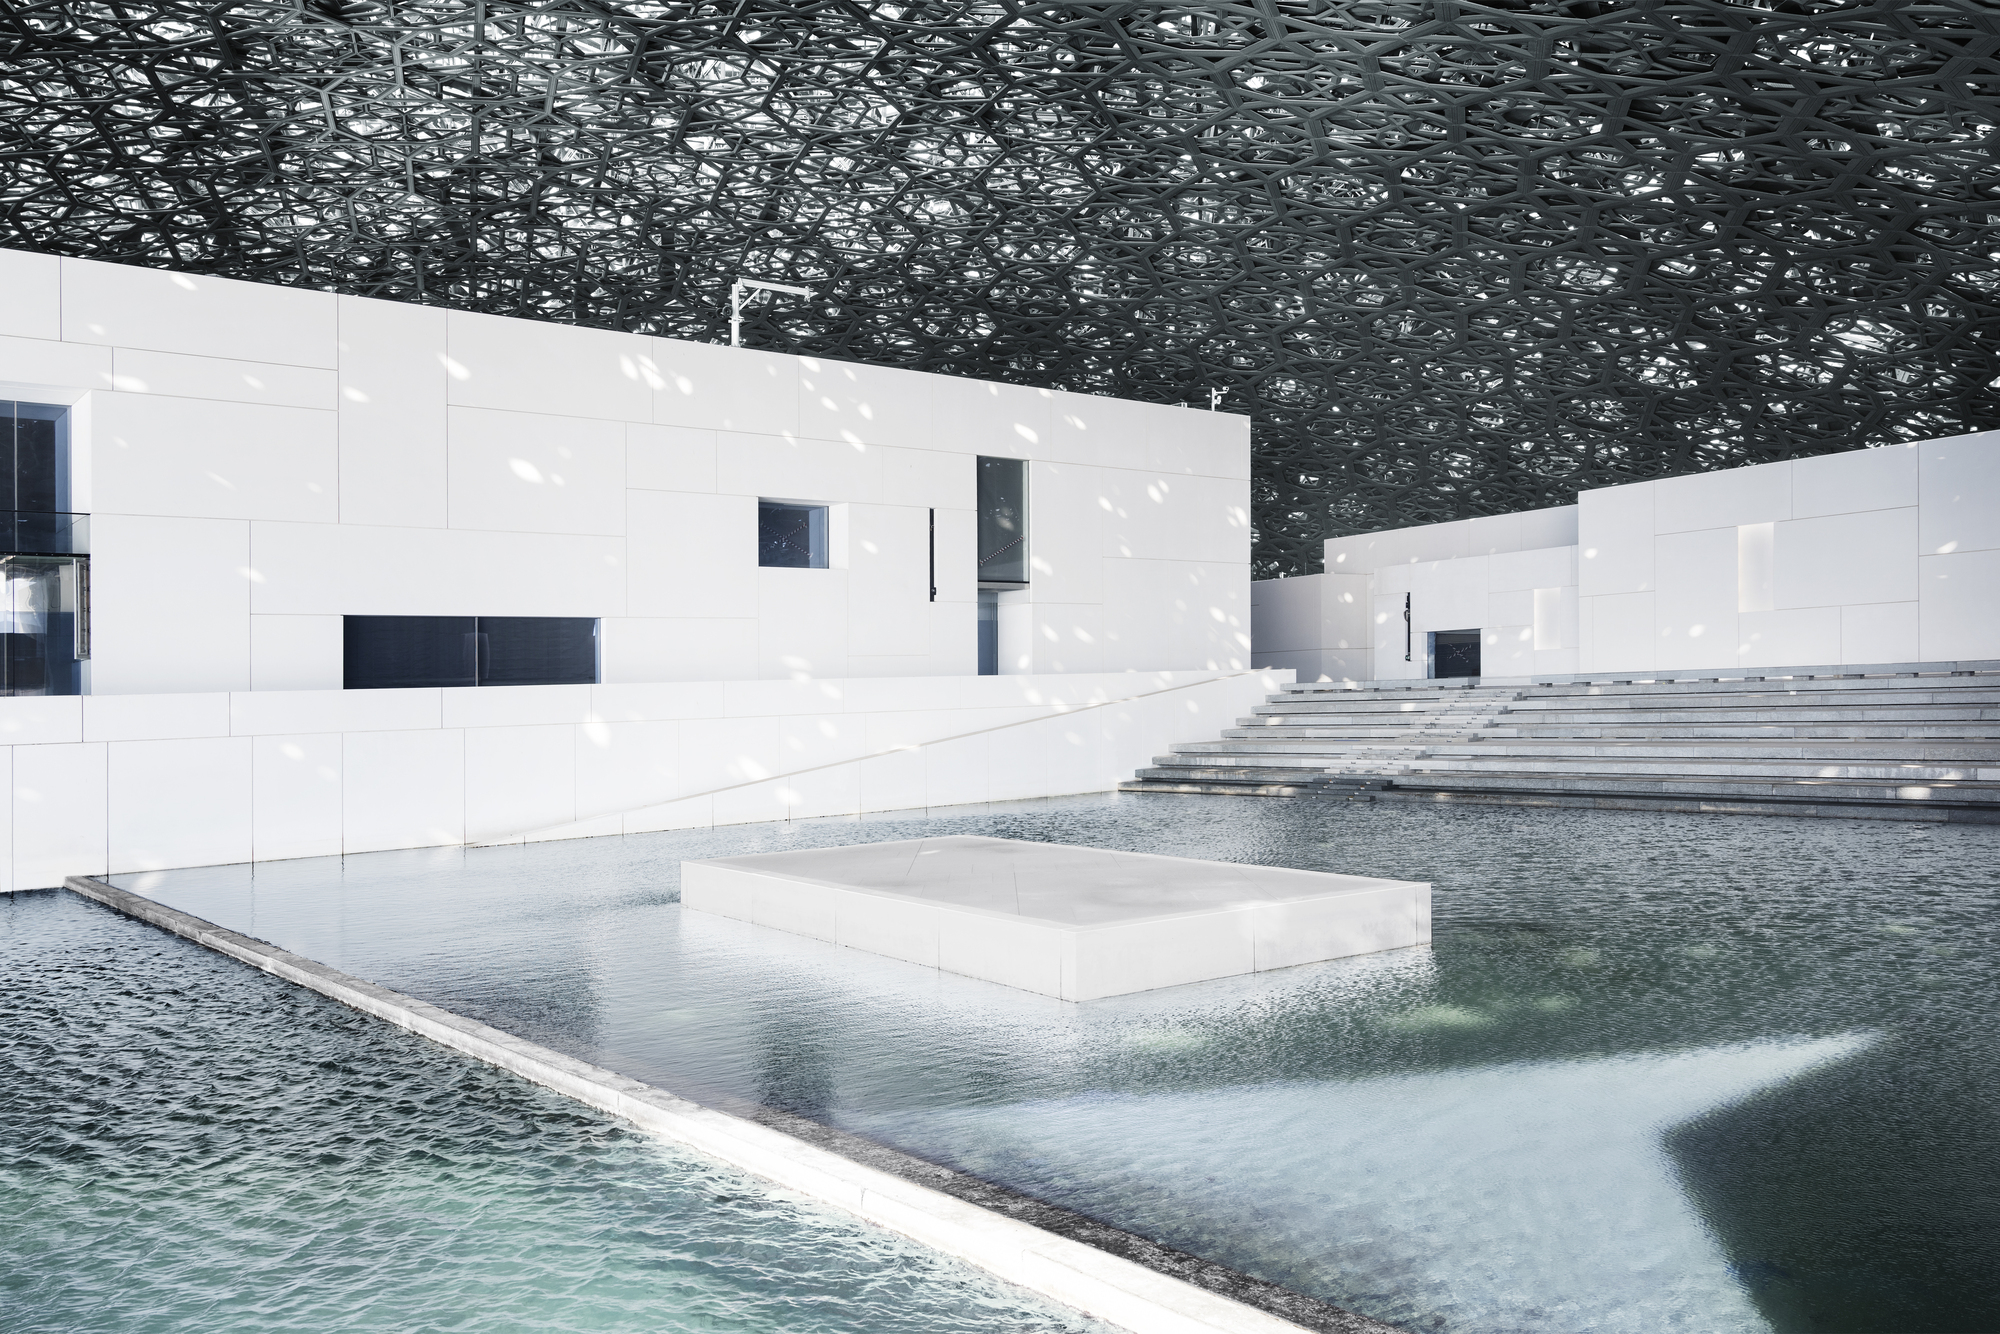 louvre abu dhabi announces november grand opening archdaily. Black Bedroom Furniture Sets. Home Design Ideas